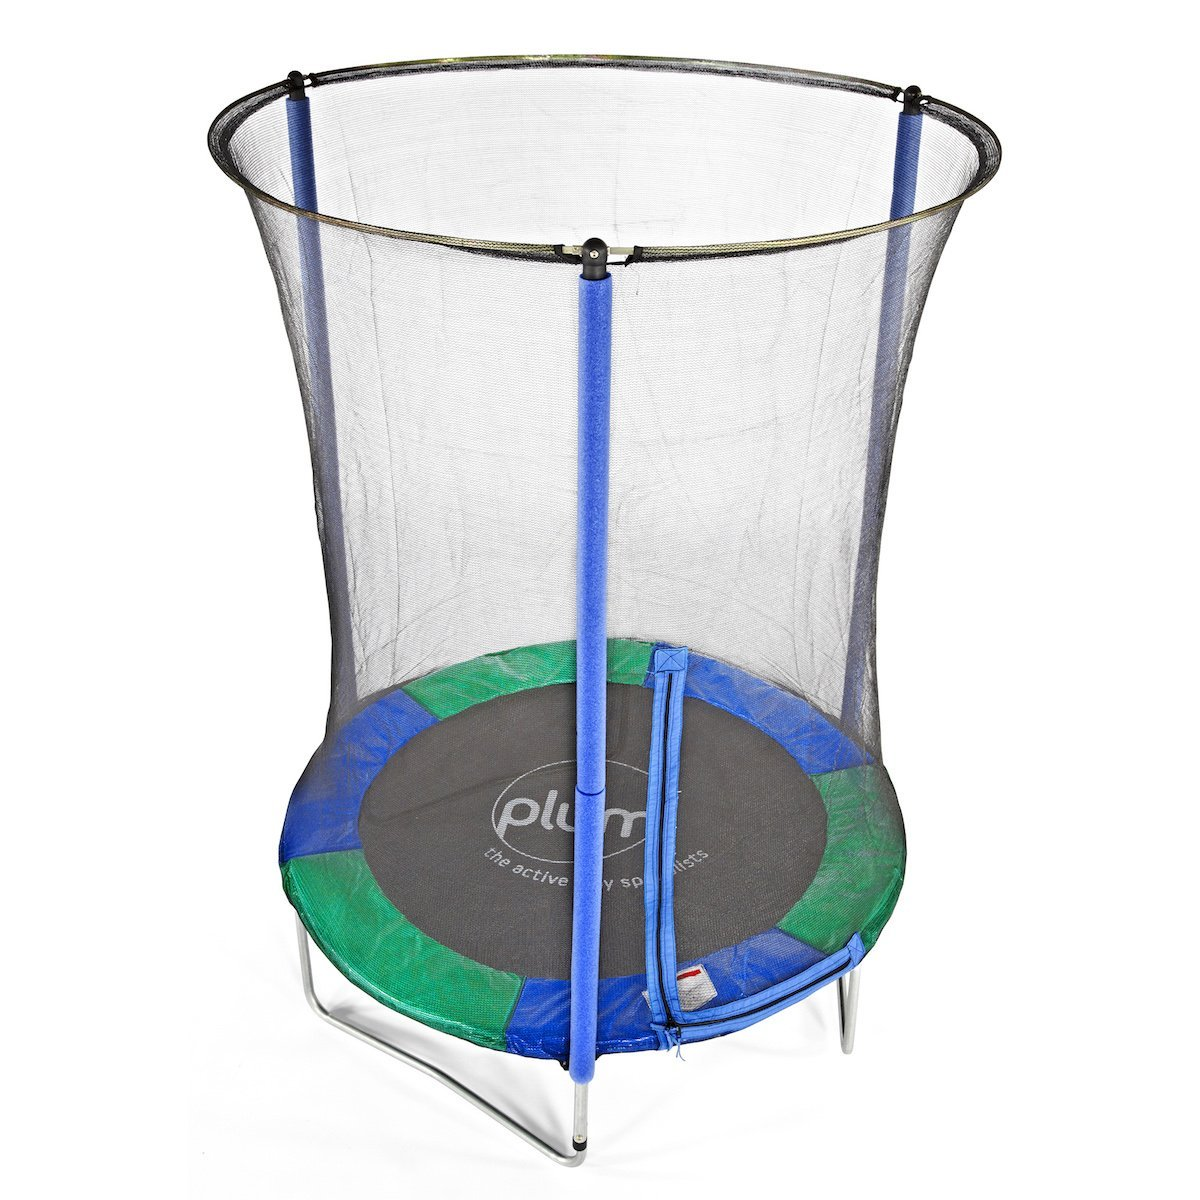 New Plum Junior 4ft6 Kids Trampoline With Safety Net